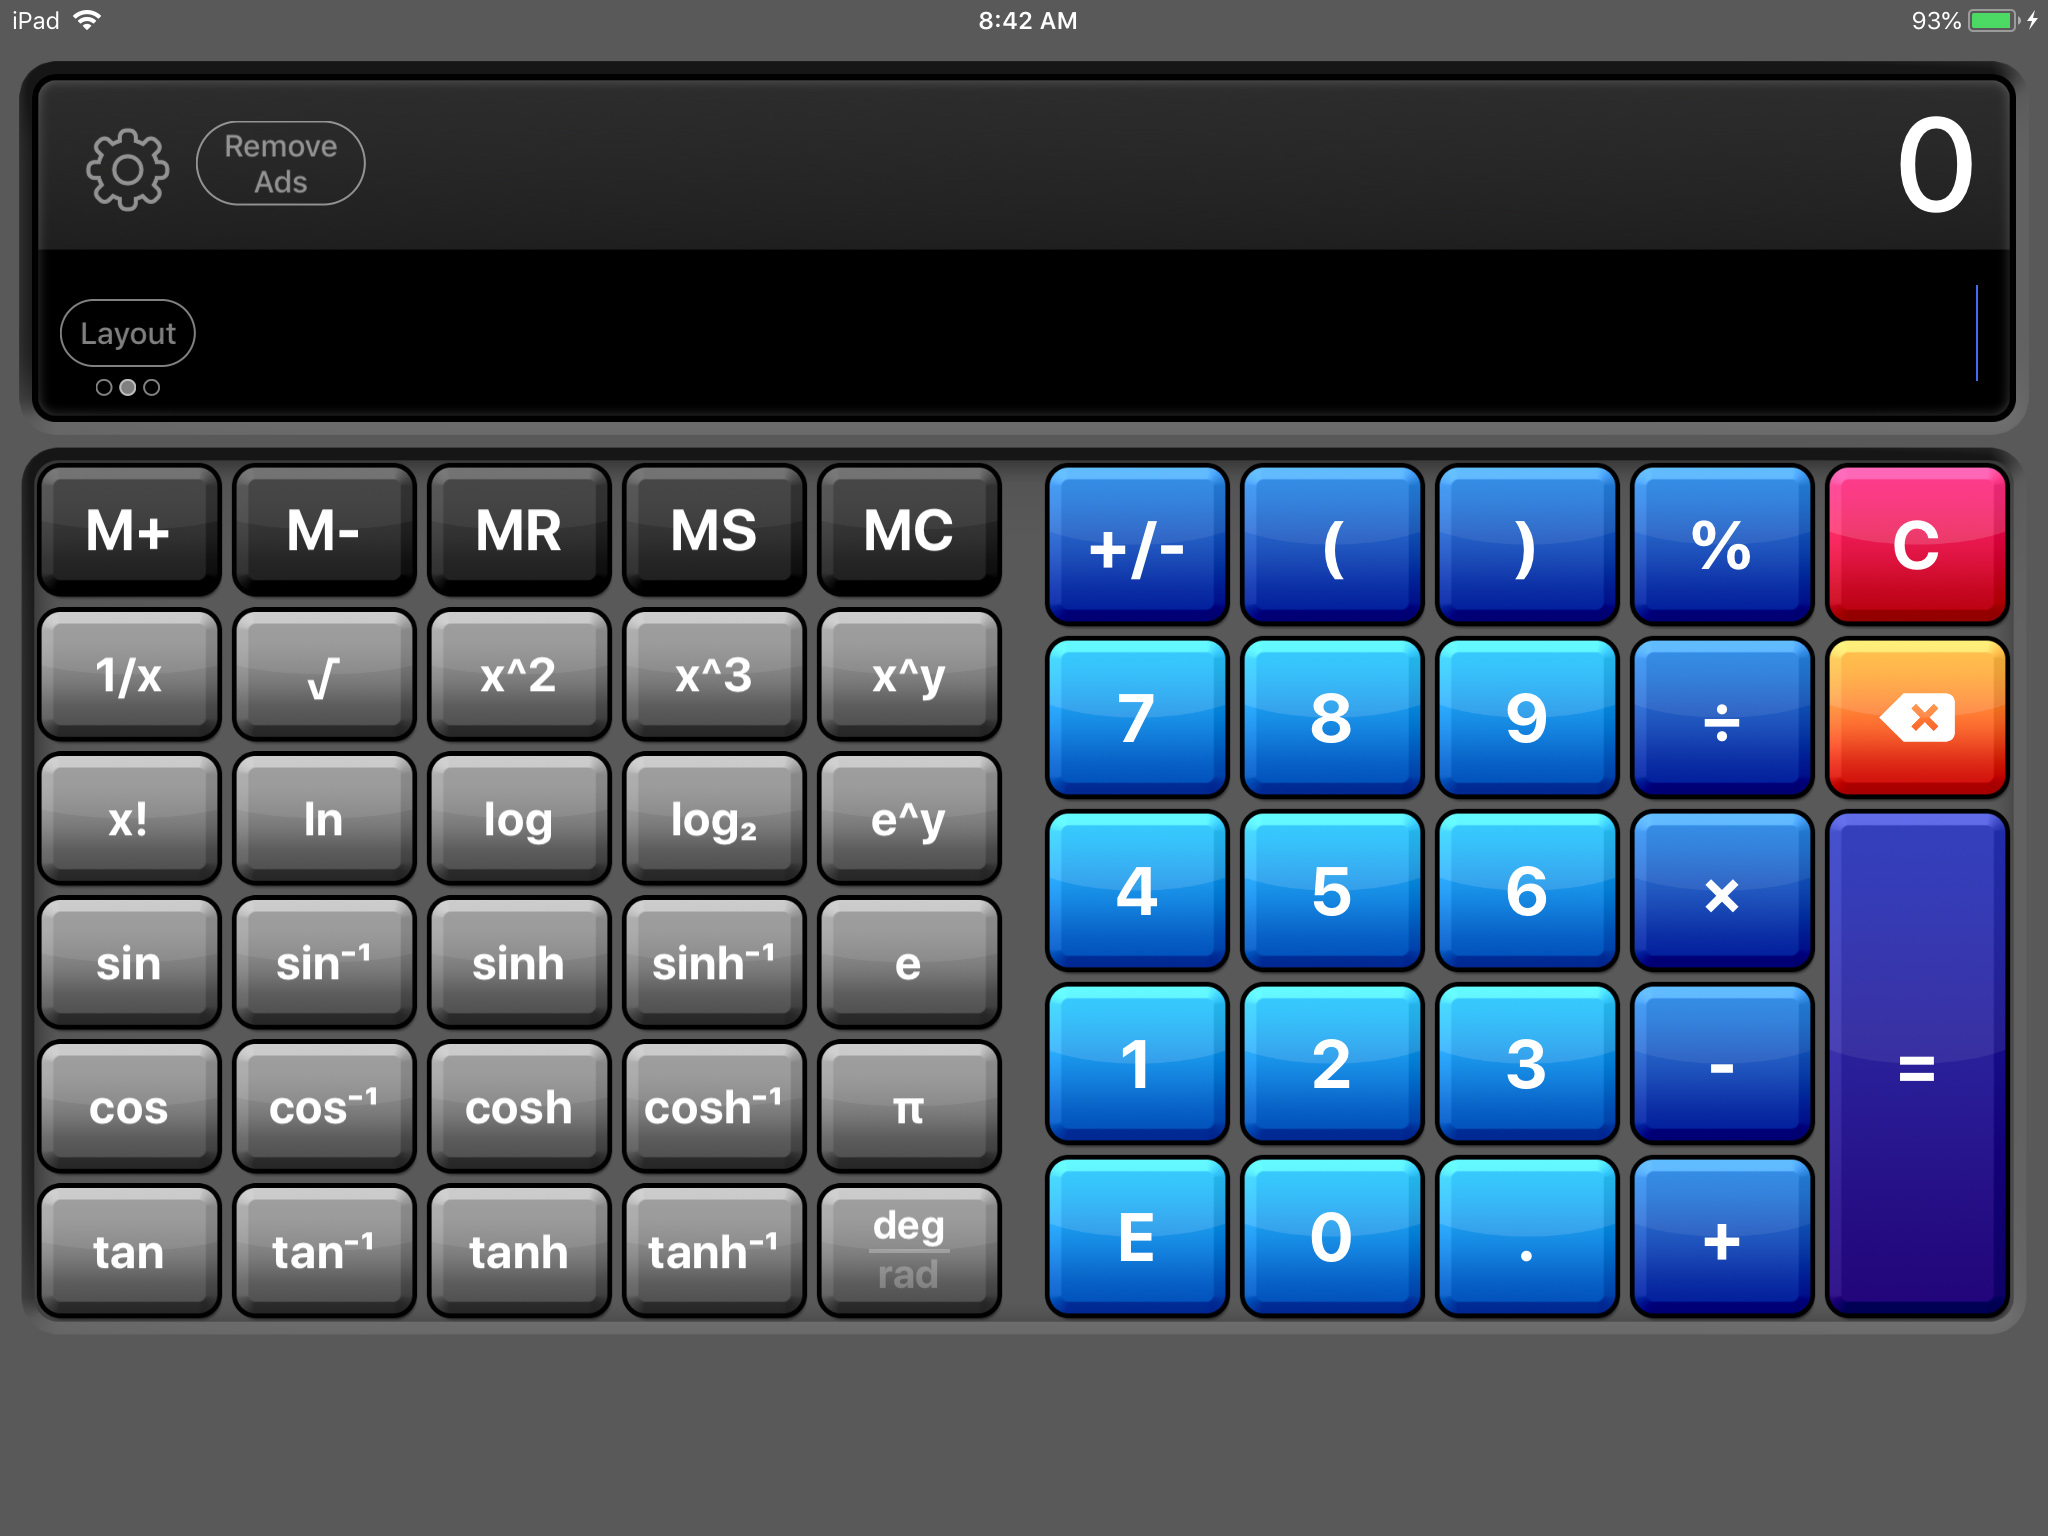 Calculator Lite on iPad